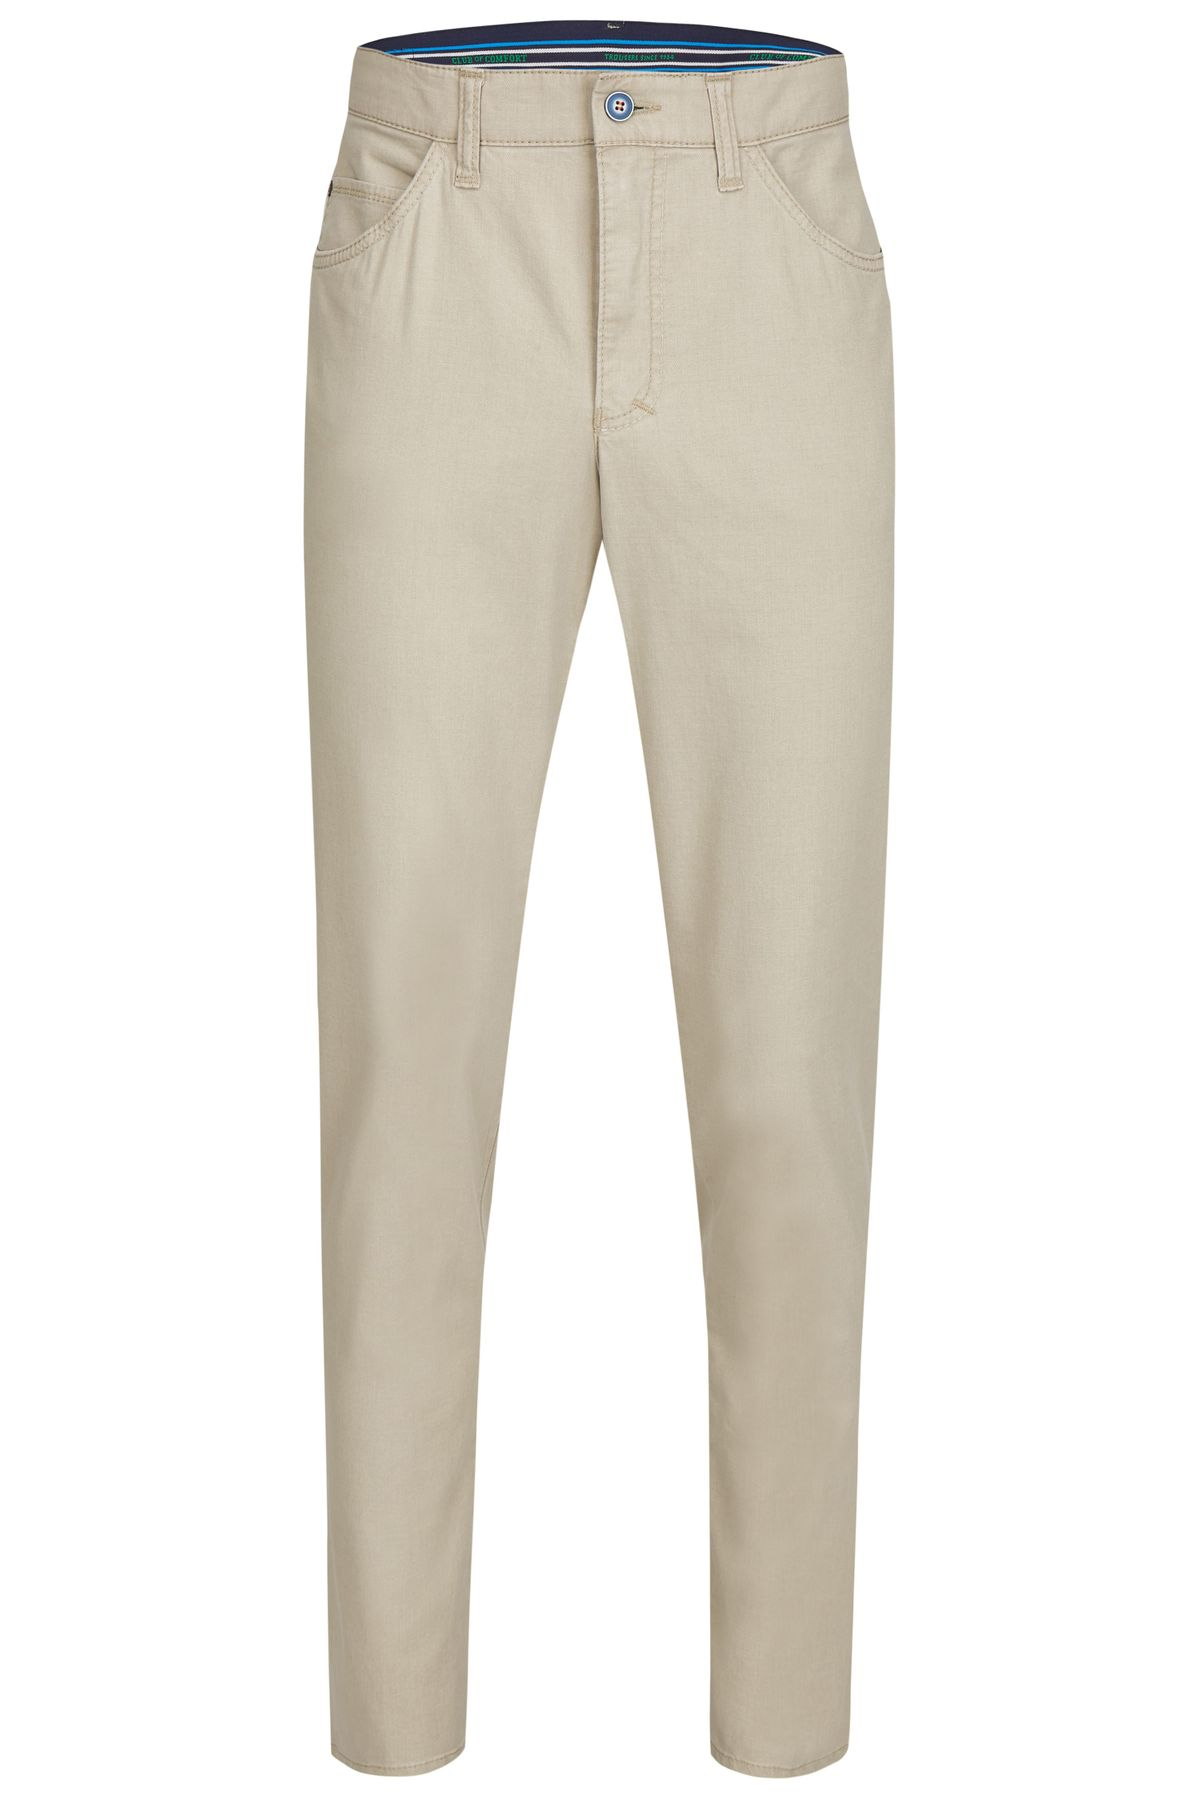 Club of Comfort - Herren Chino Hose, Marvin (6901) – Bild 1